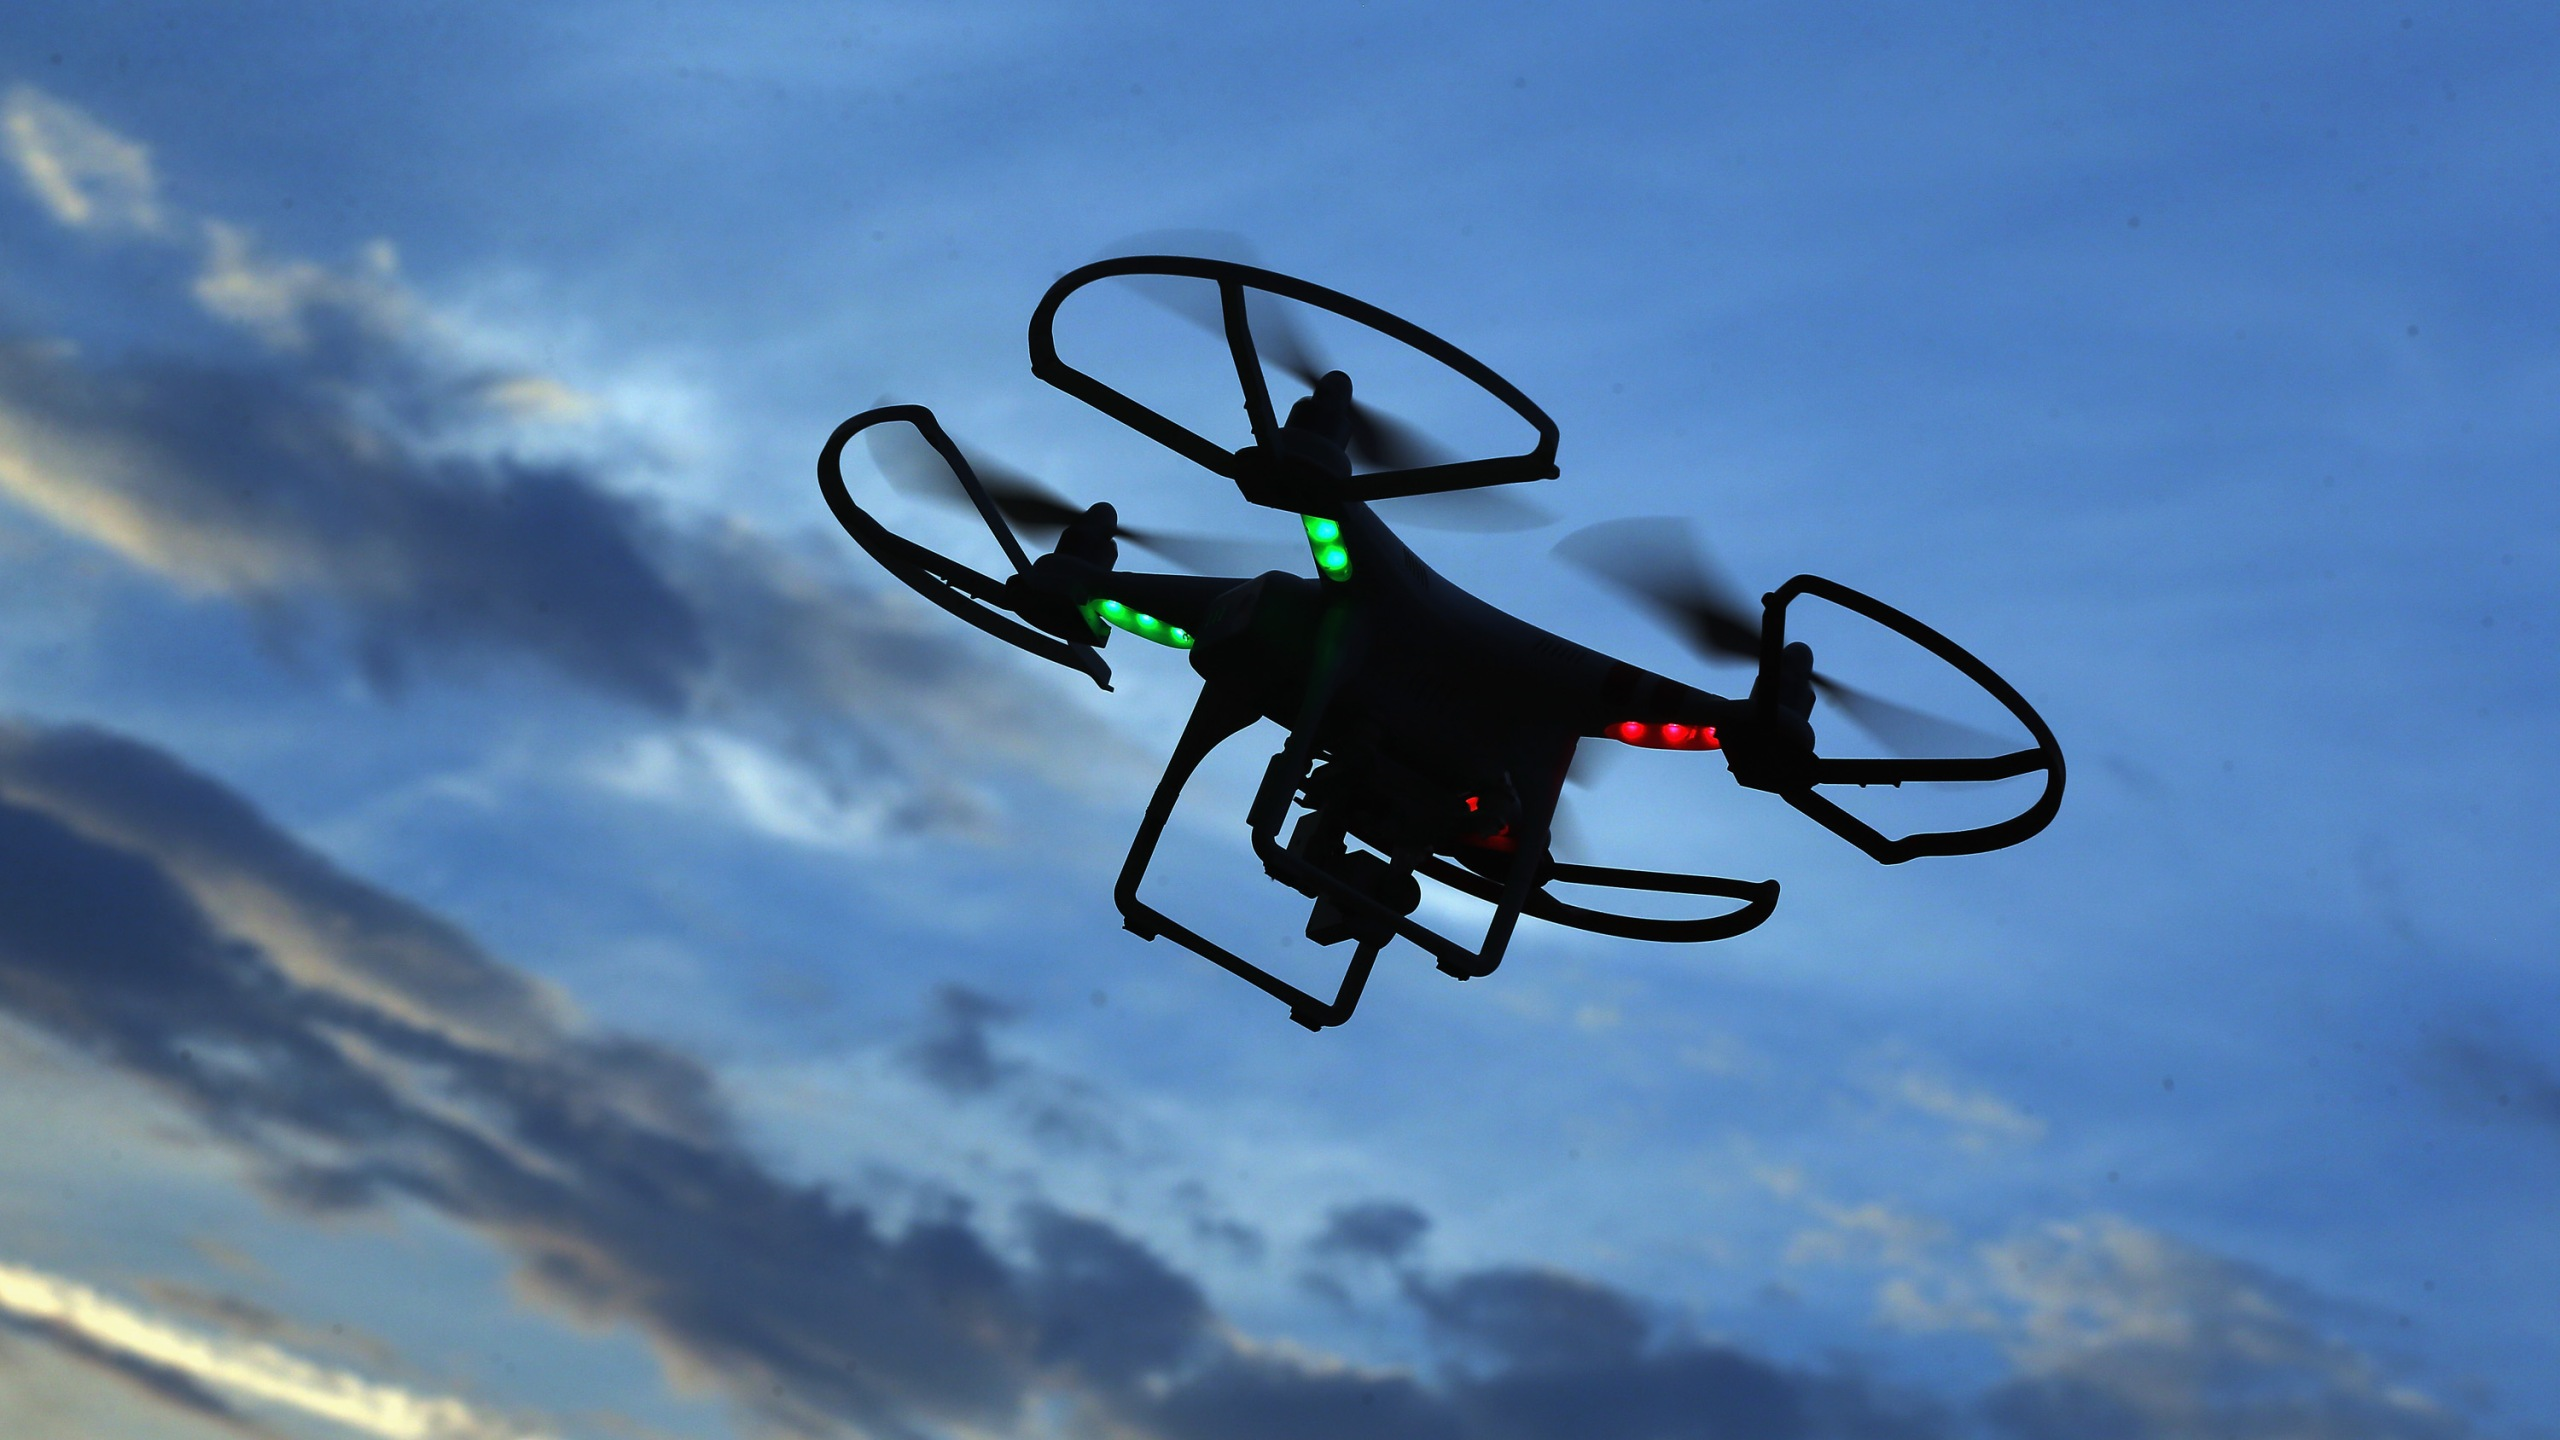 This undated file photo shows a drone in flight. (Credit: Bruce Bennett/Getty Images)